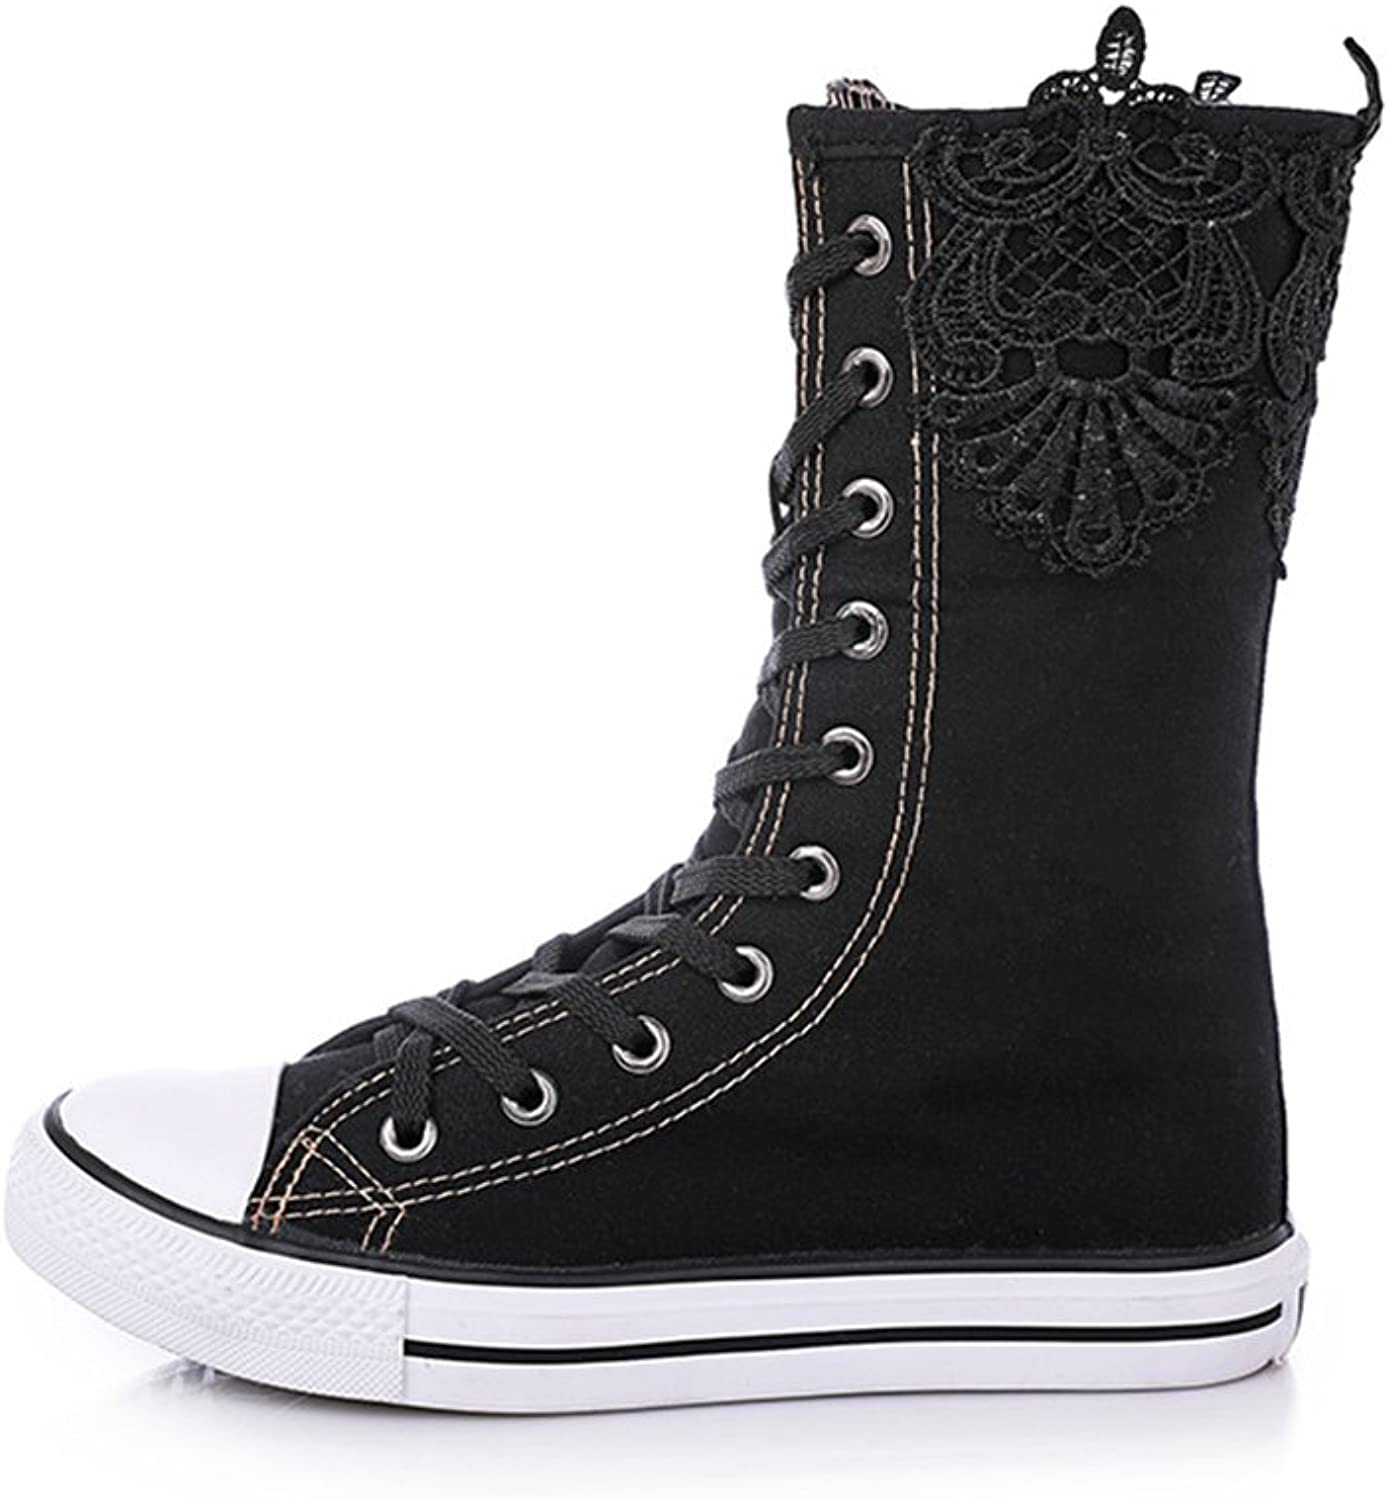 Super frist High Top Canvas Sneakers for Women Girls Lace Up High Boots